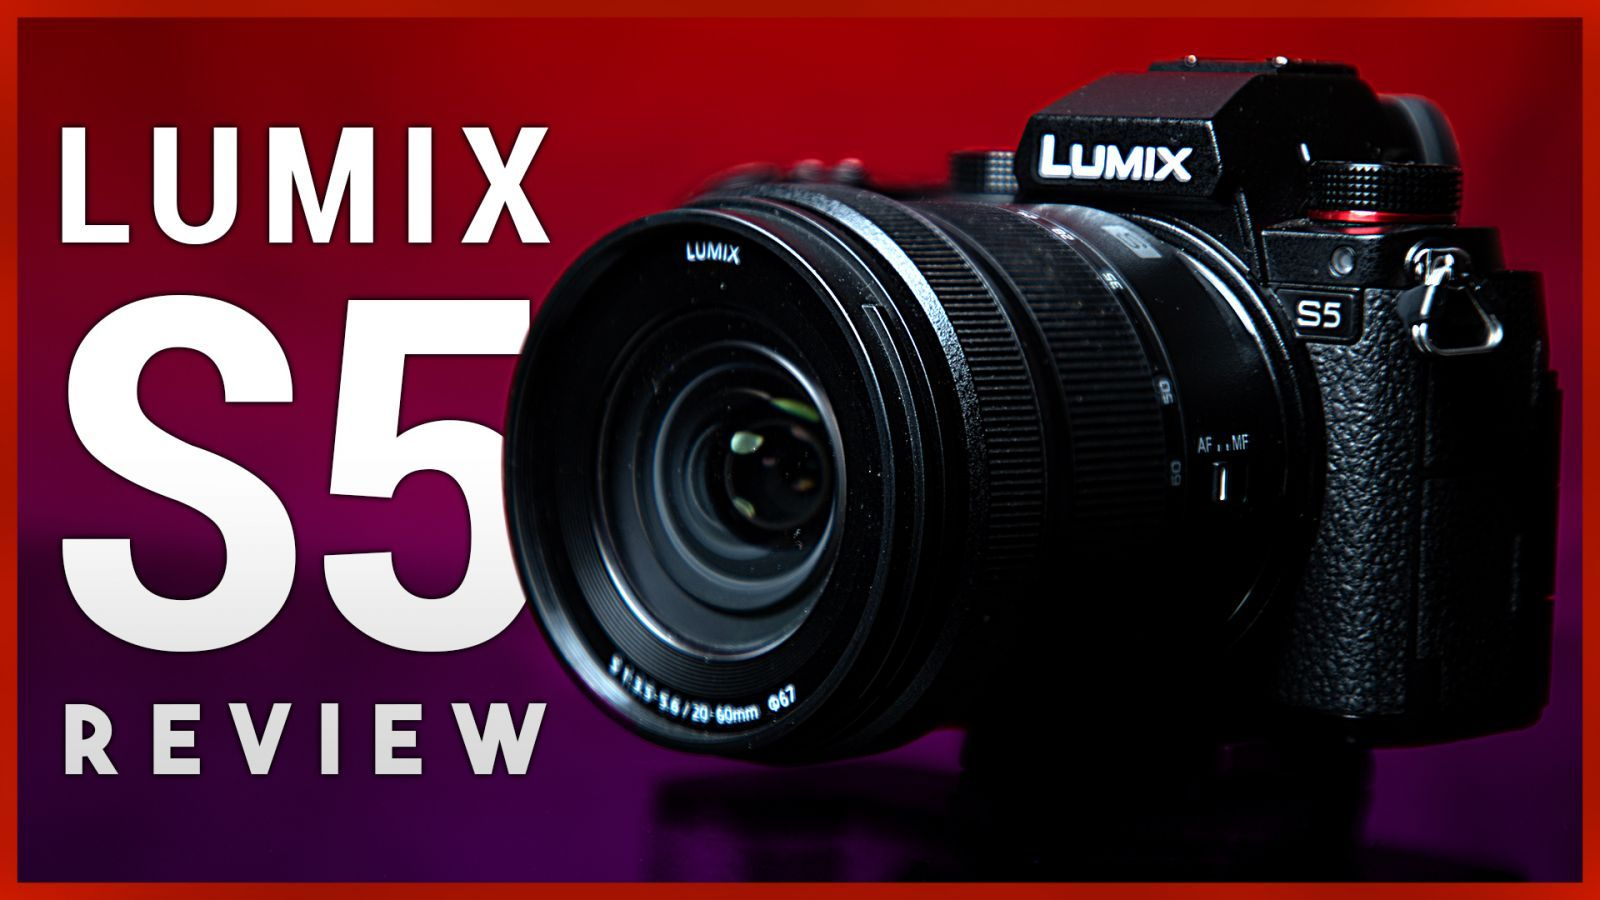 Panasonic Lumix S5 Review - Mirrorless Camera With 10-Bit 4K 60p Recording